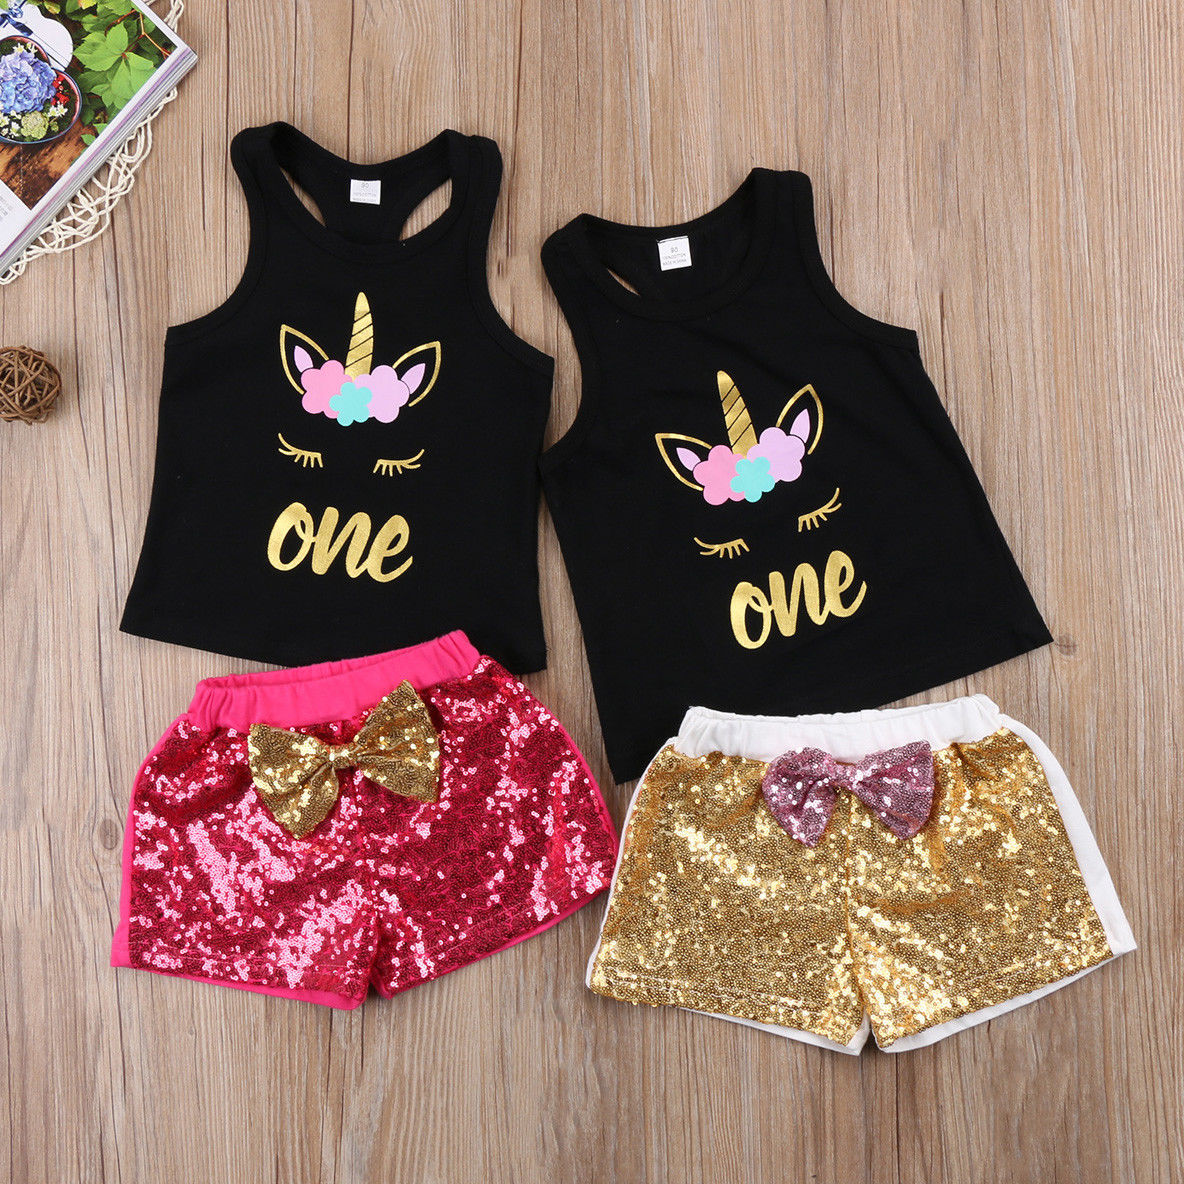 2017 Unicorn Toddler Kids Baby Girls Sleeveless T Shirt Tops Letters One VestShorts Sequins